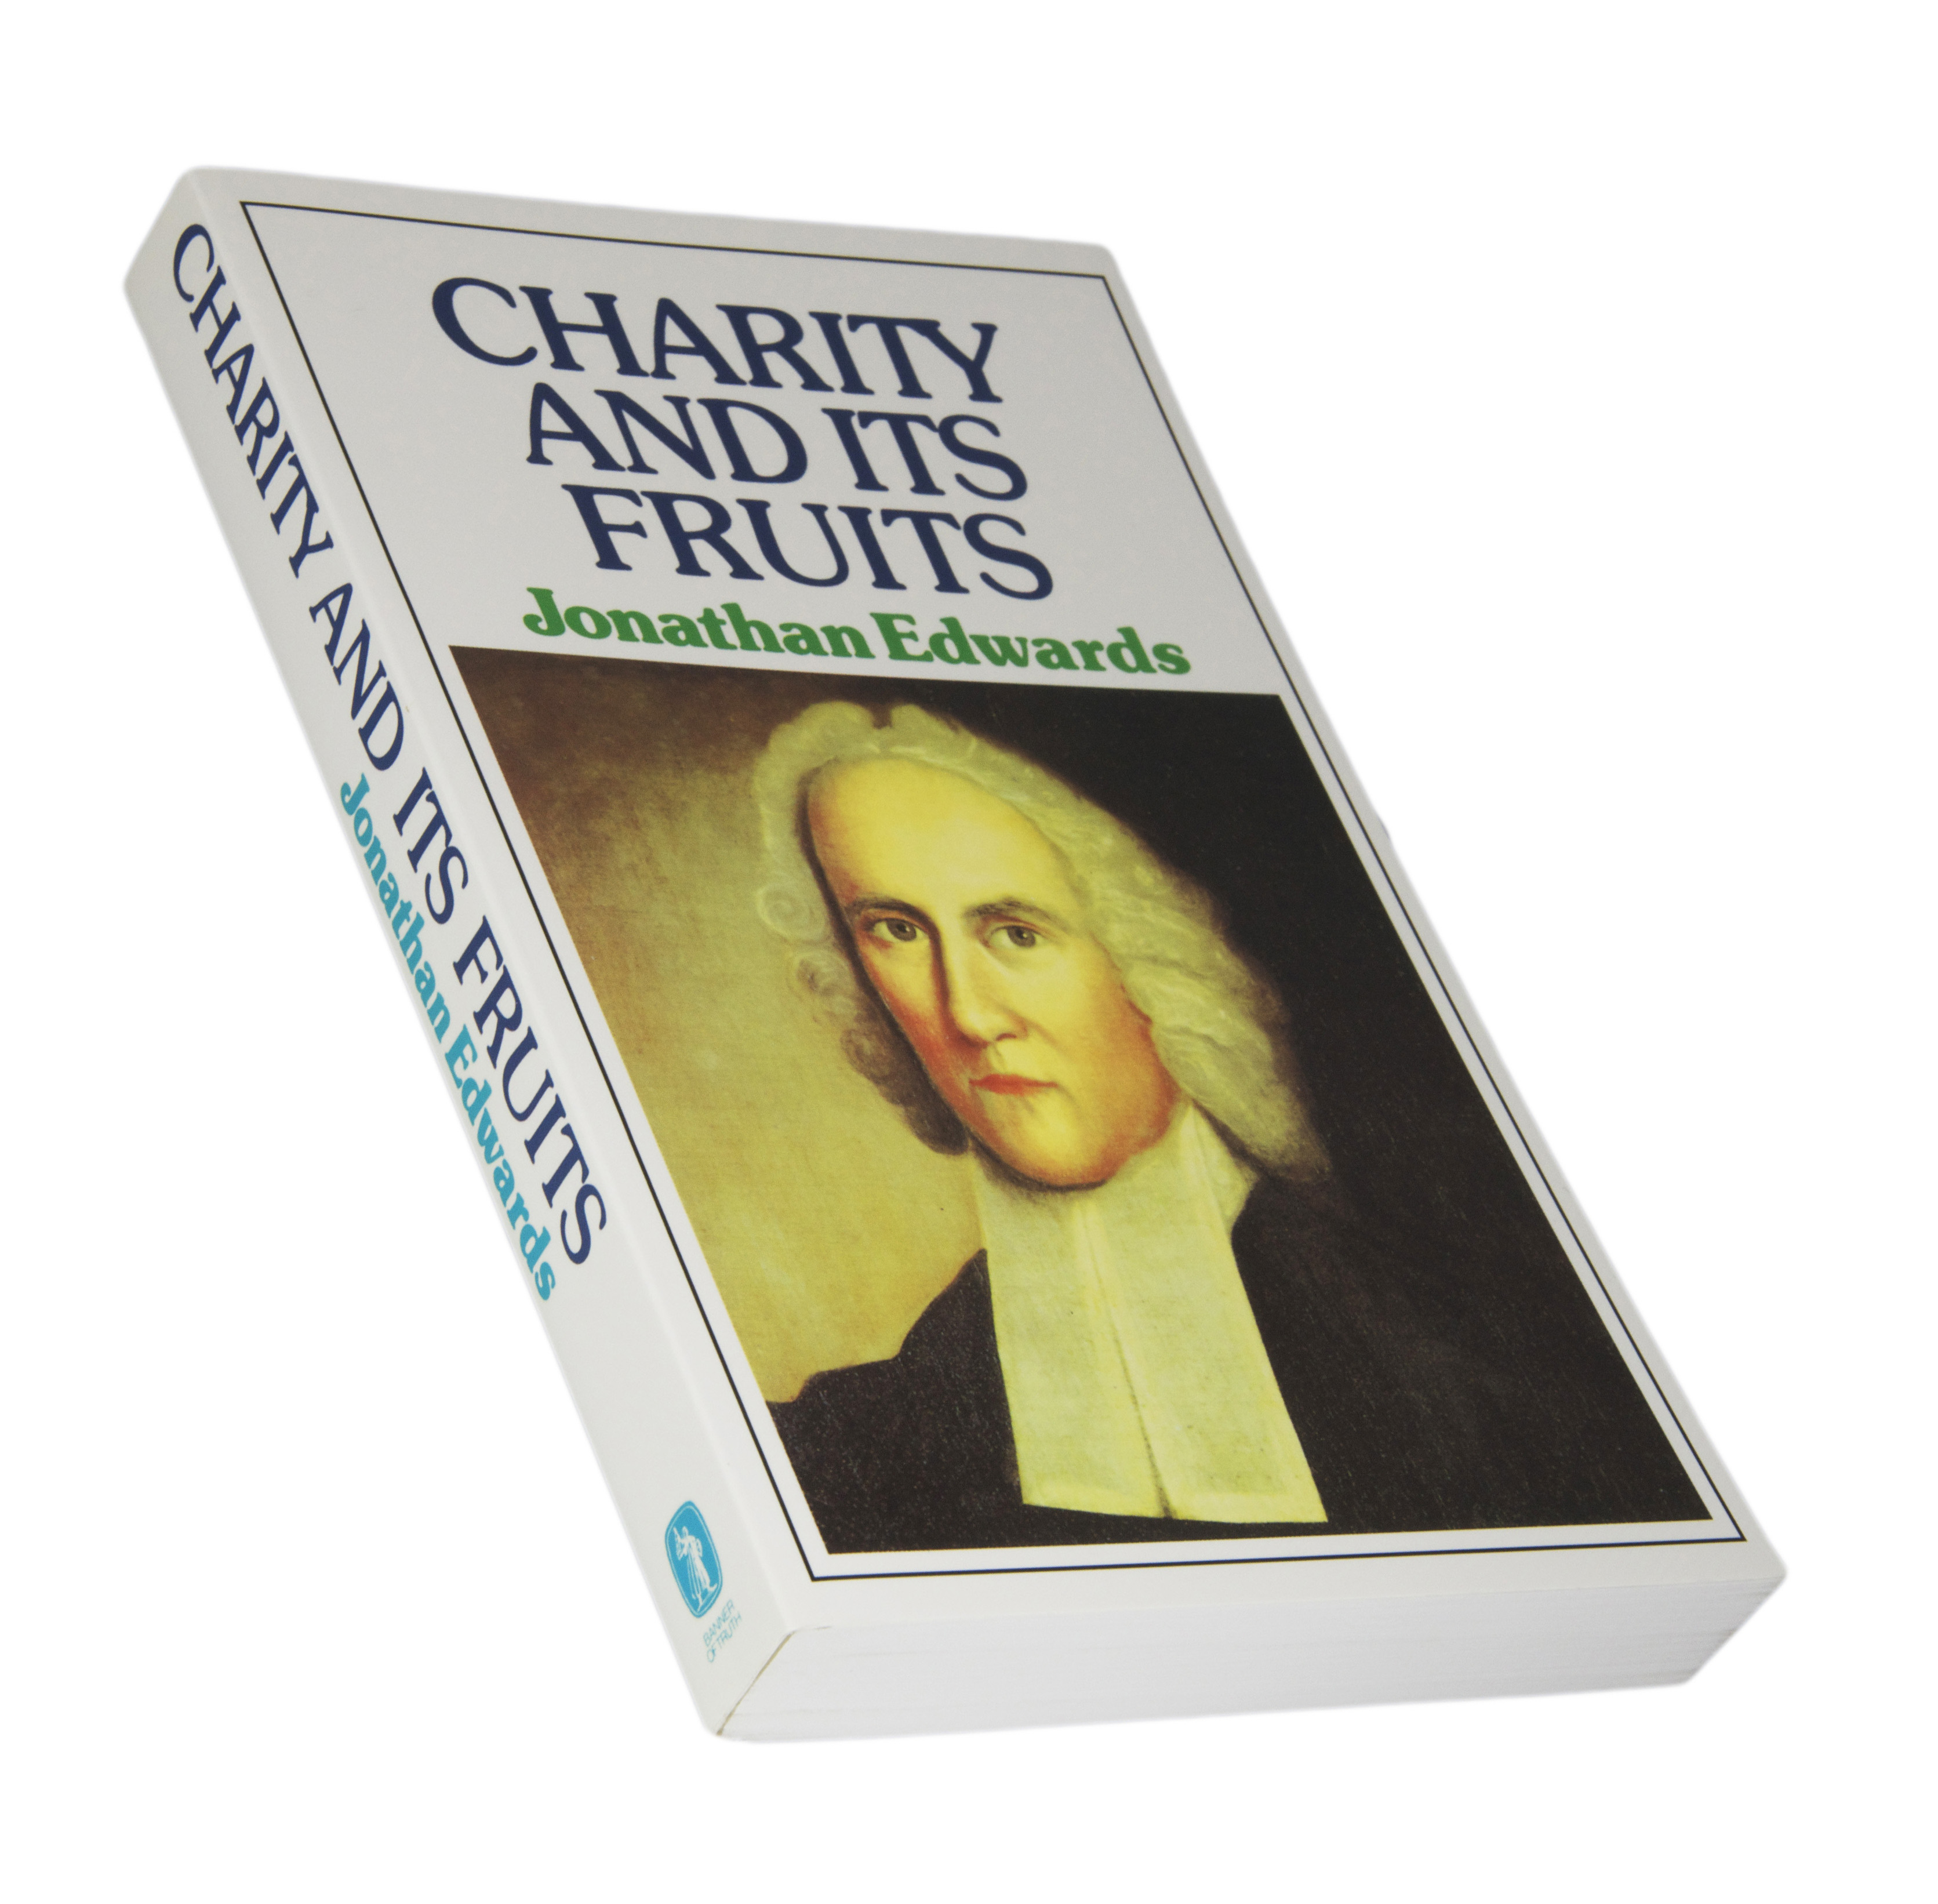 Charity and Its Fruits